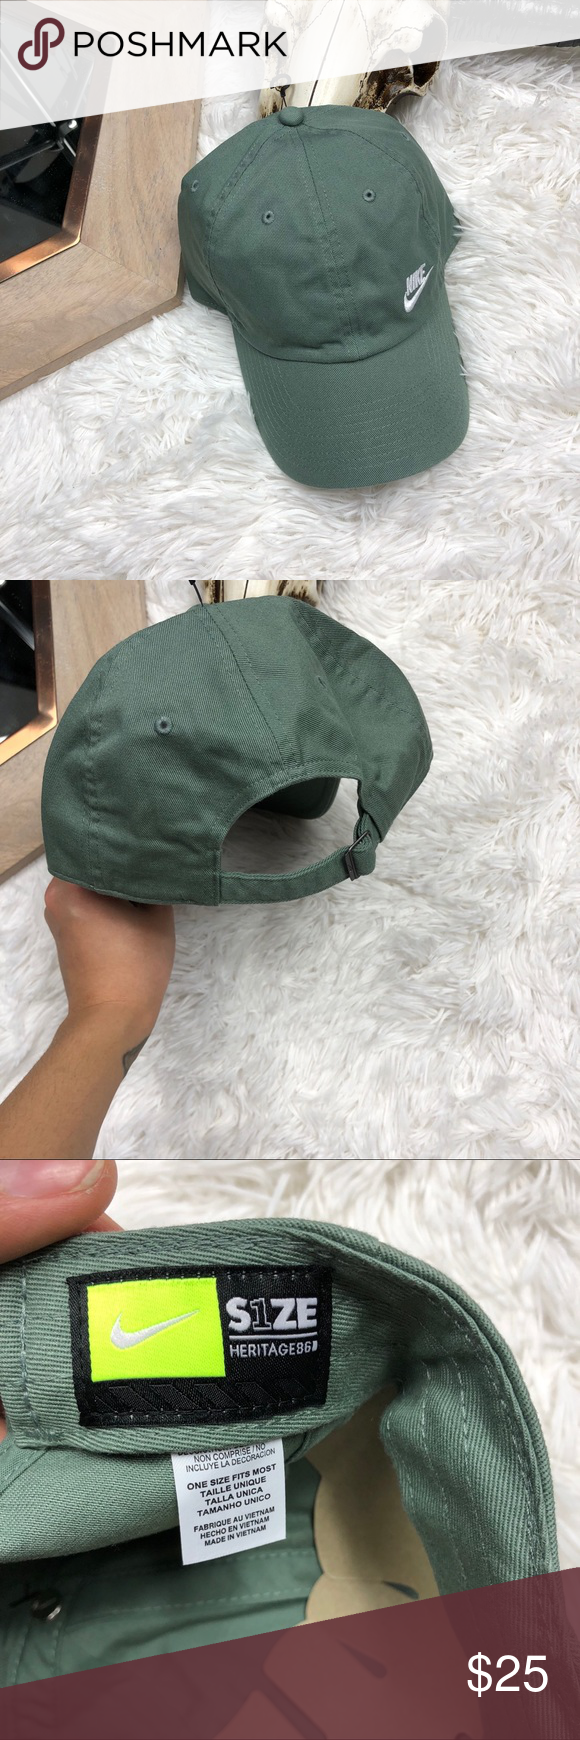 072f6db59 Nike Dad Hat Brand new Clay Green Color Nike Accessories Hats | My ...